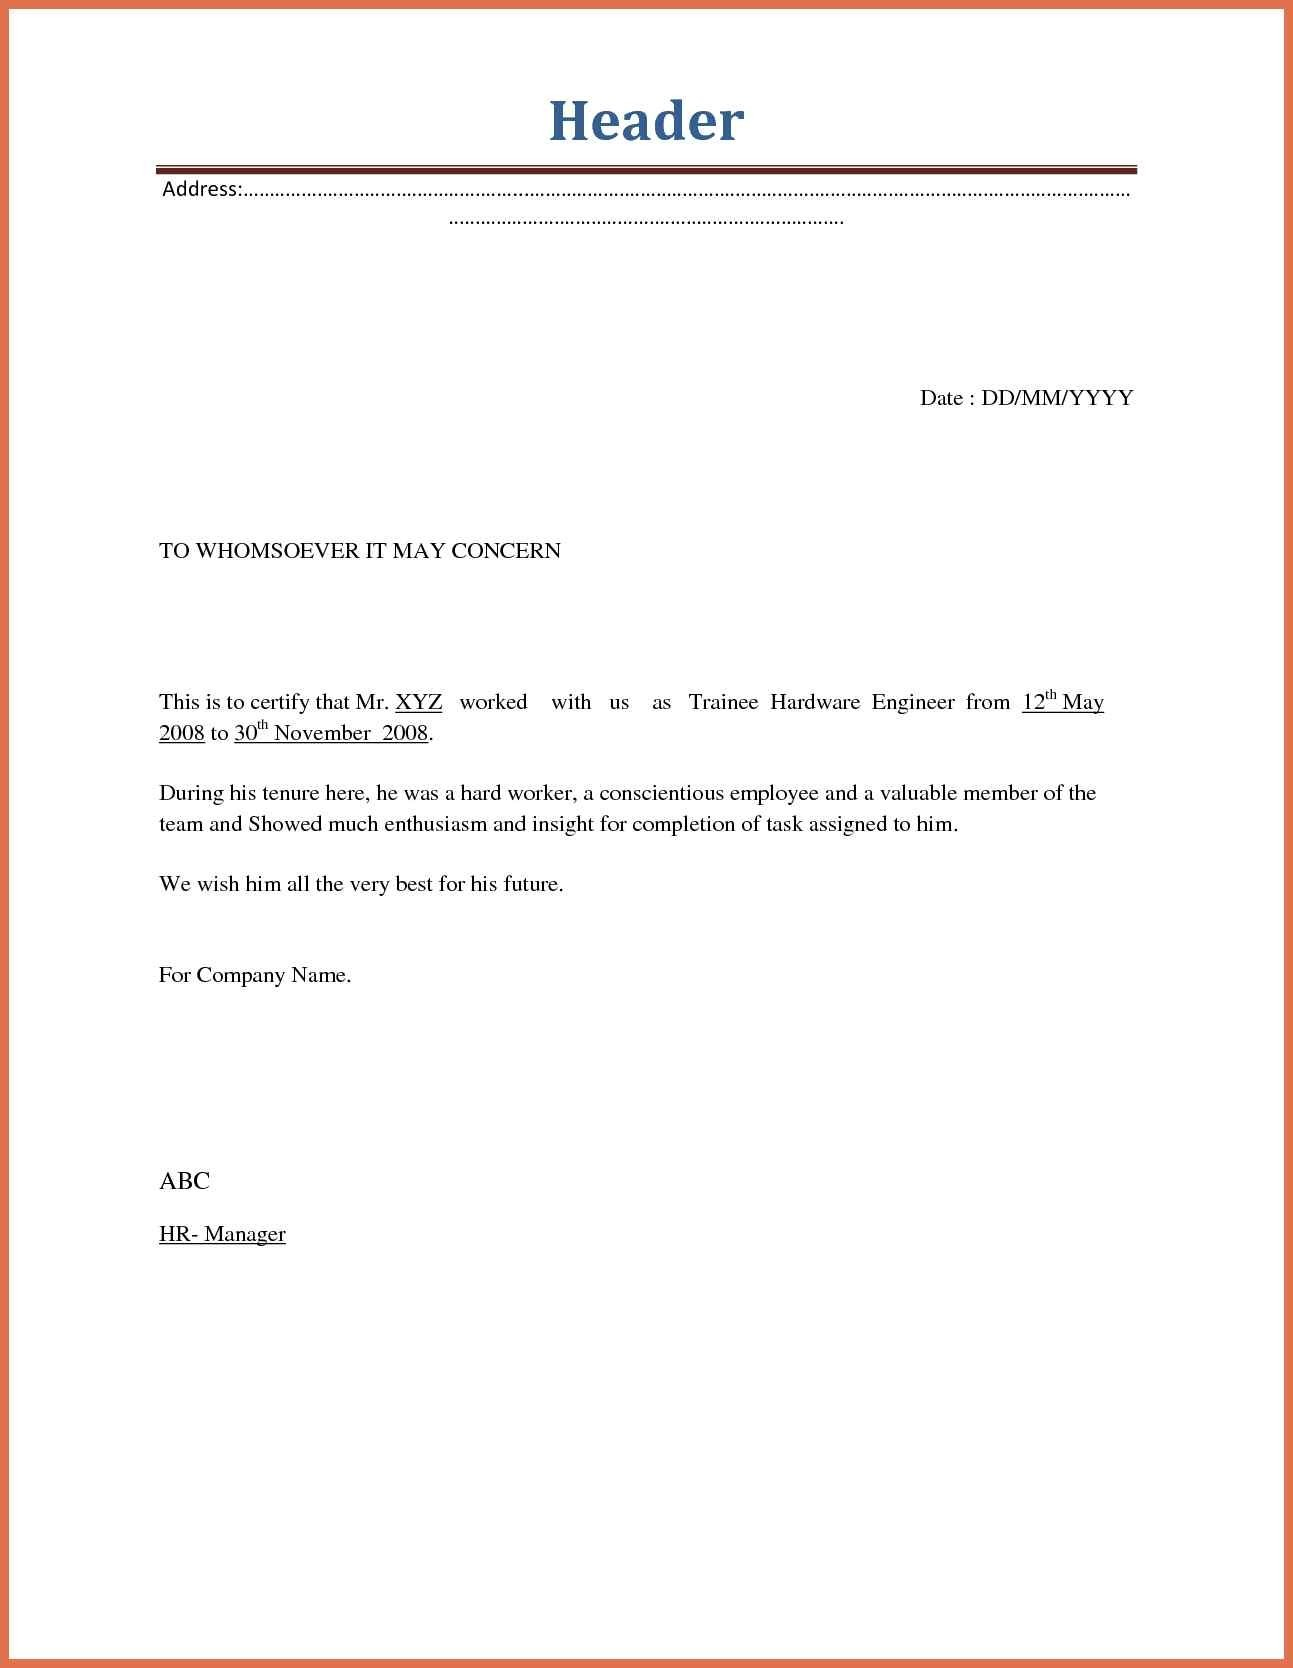 Separation Letter to Employee Template - Sample Job Abandonment Letter New Job Abandonment Letter Sample Best